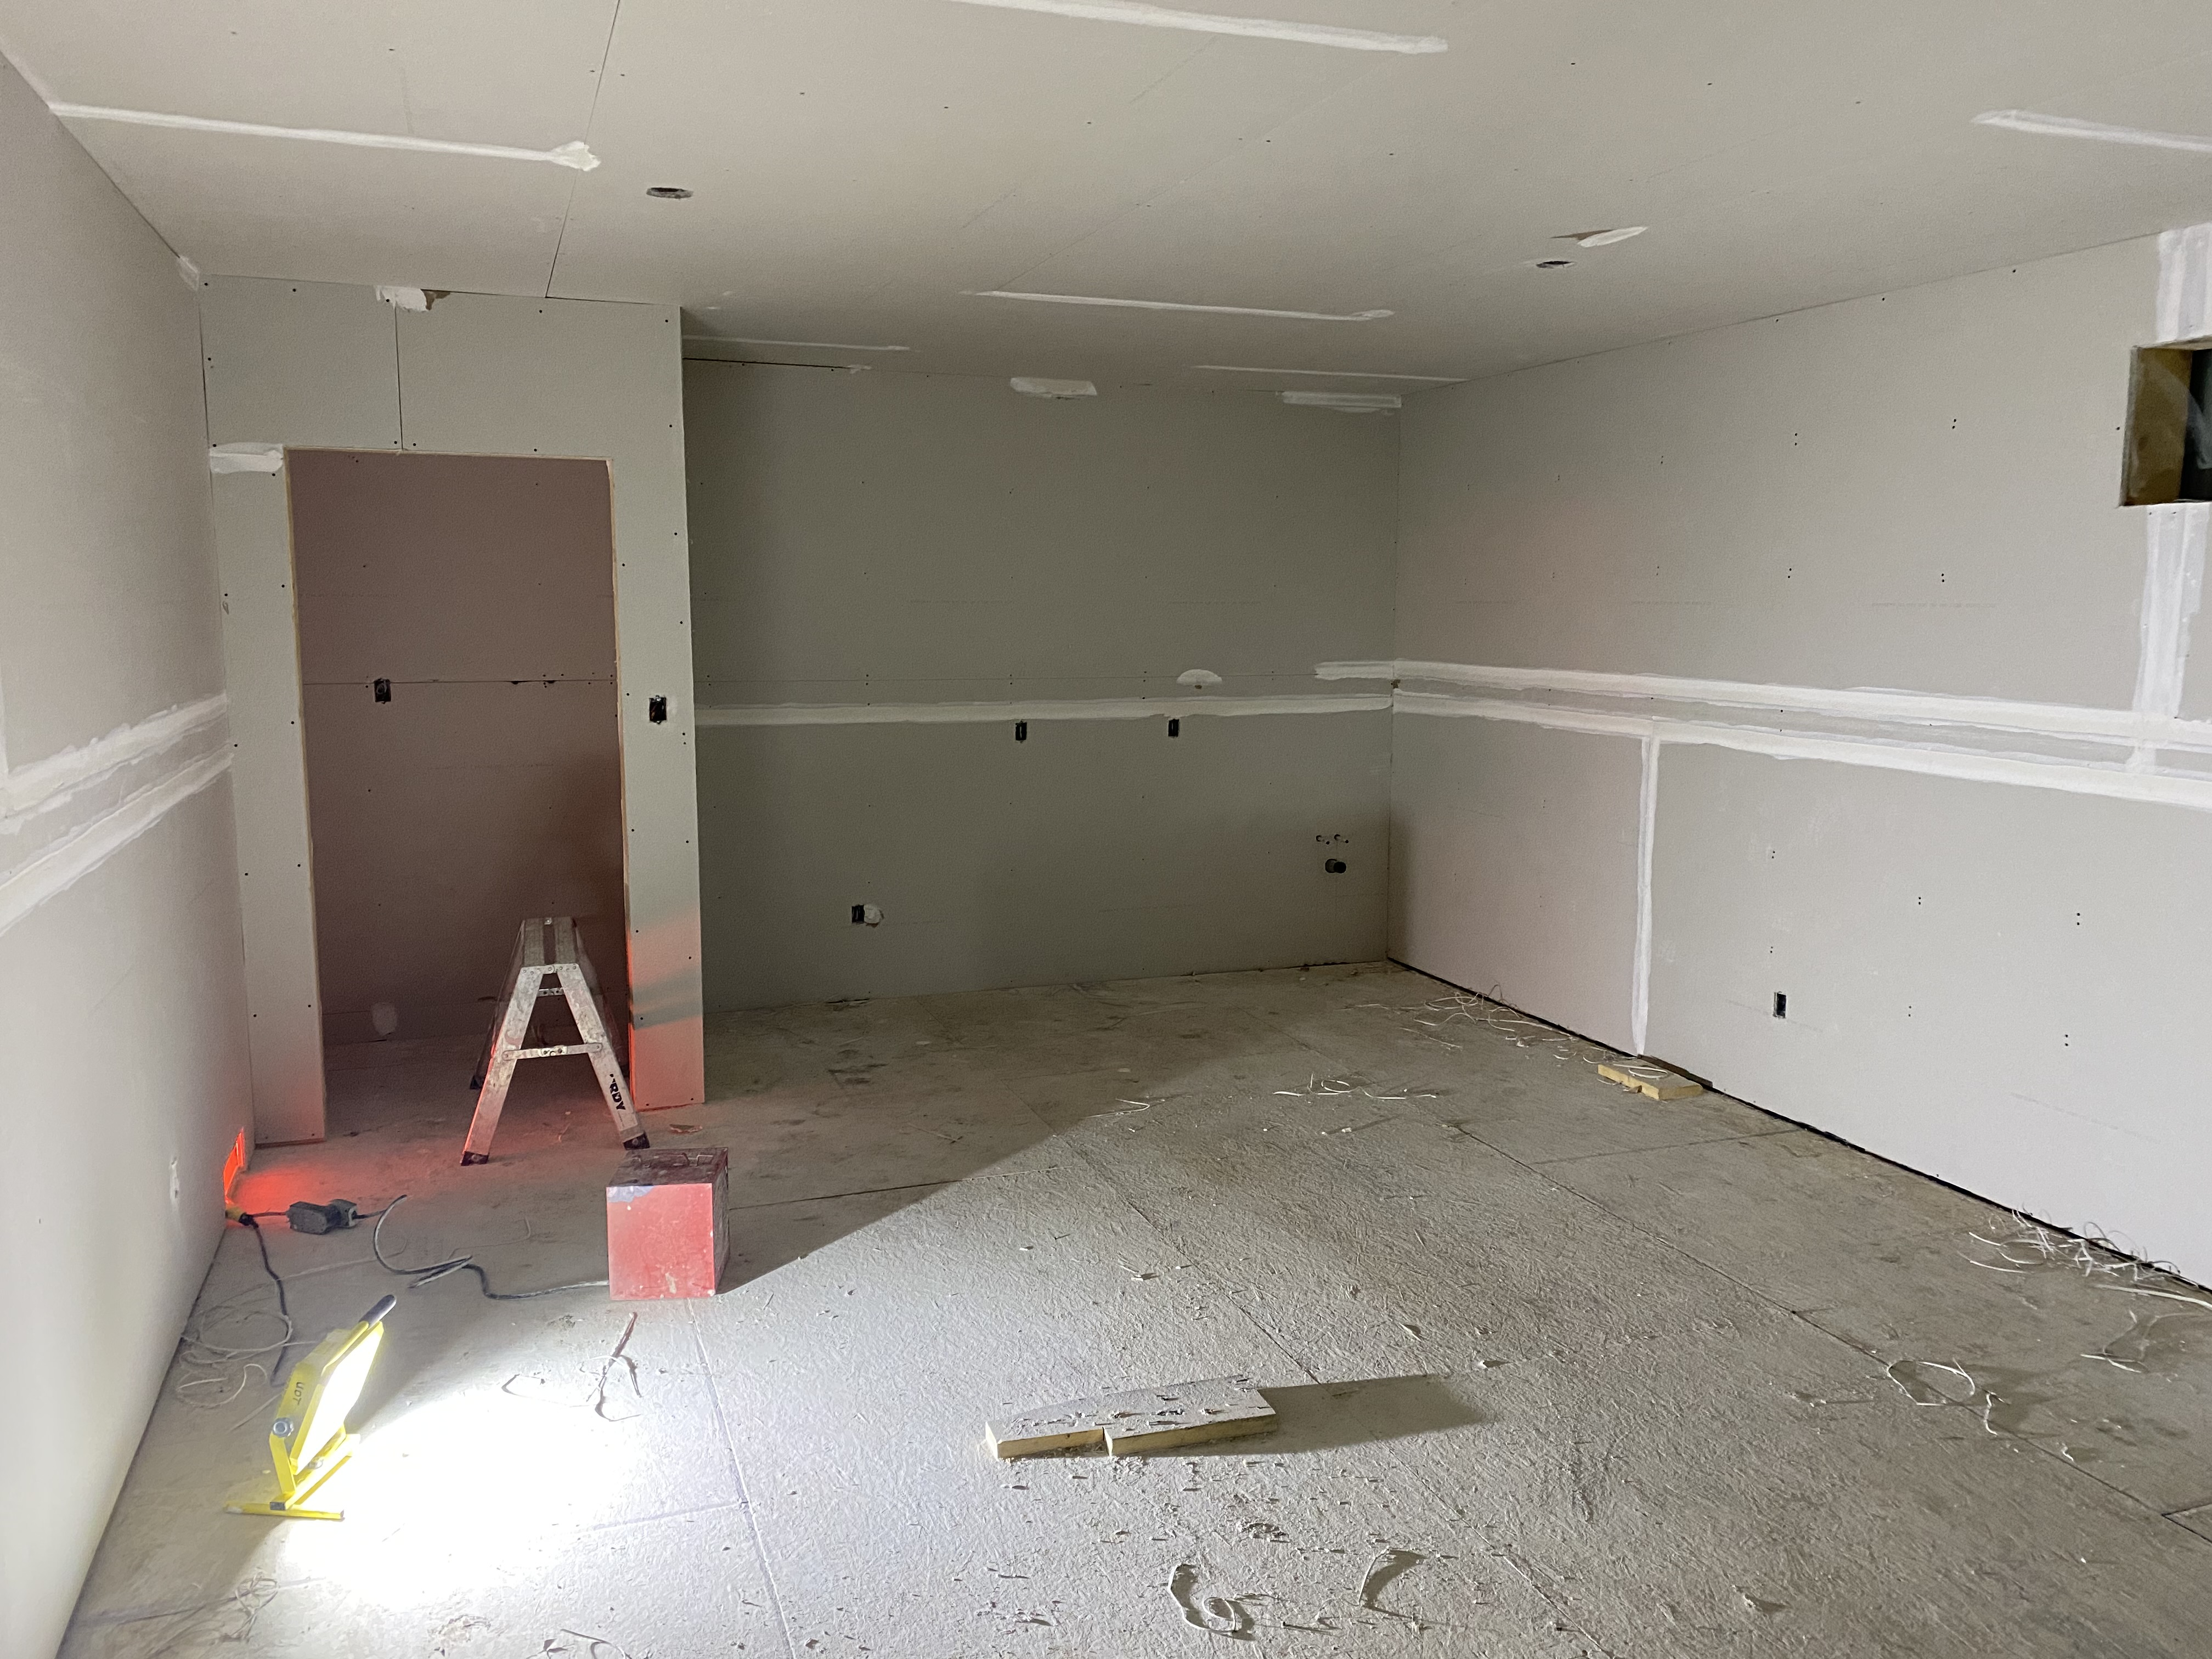 The new space for Give the Word in Steinbach coming together.